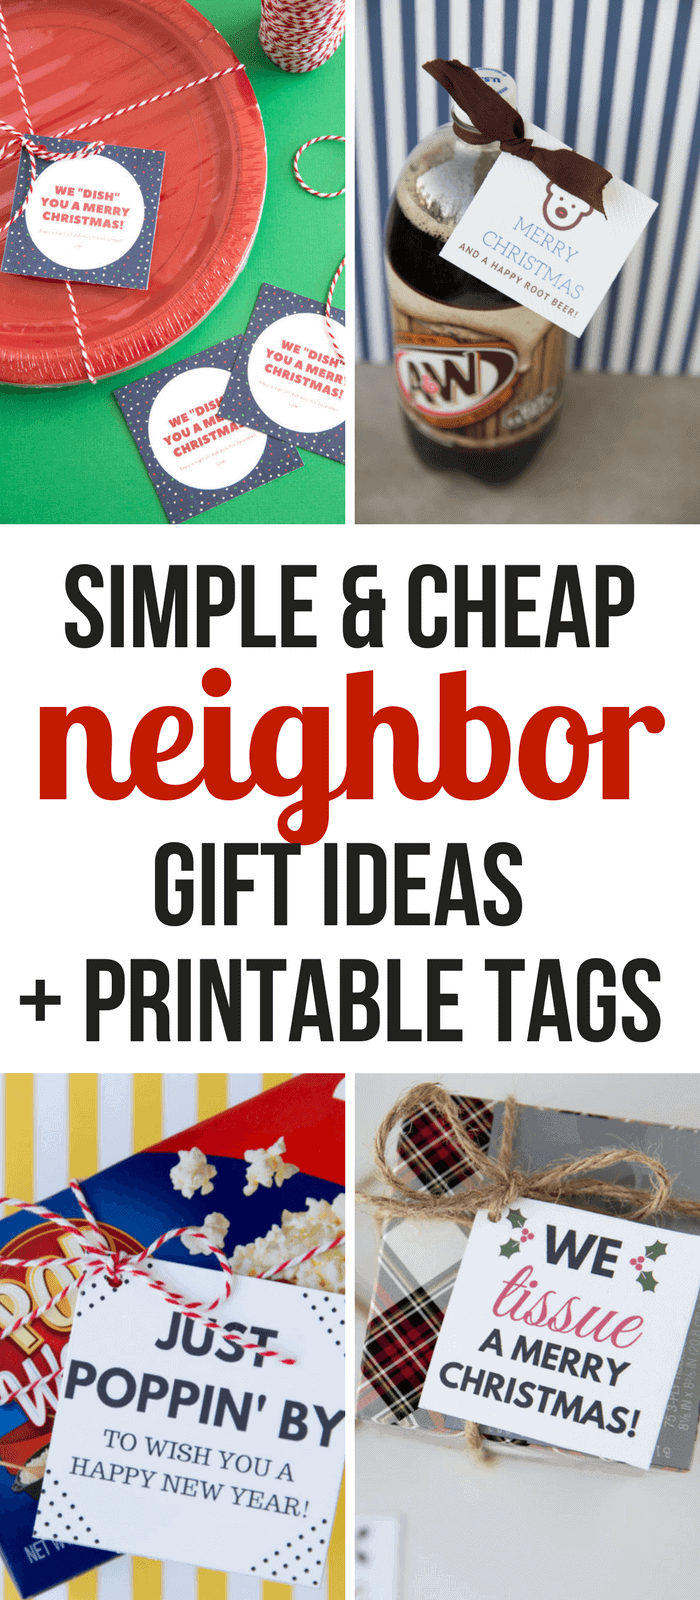 10 Inexpensive & Simple Christmas Neighbor Gift Ideas - So Festive